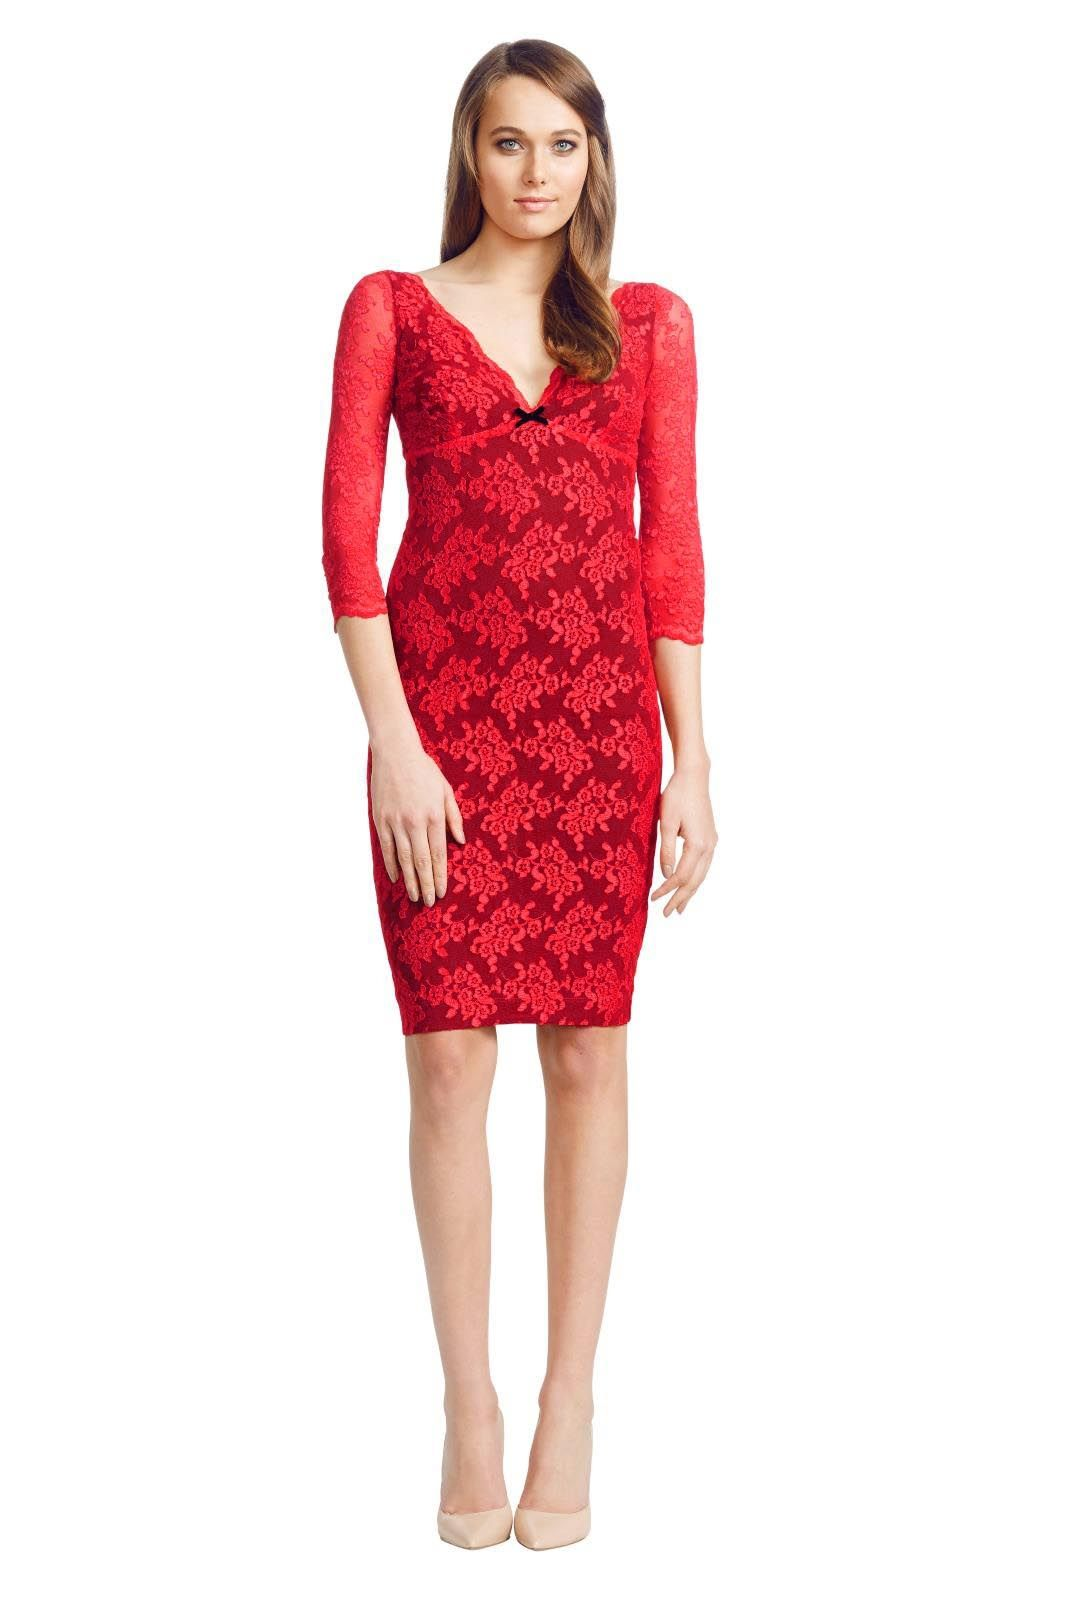 Wheels and Dollbaby - Red Scallop Lace FiFi Dress - Red - Front